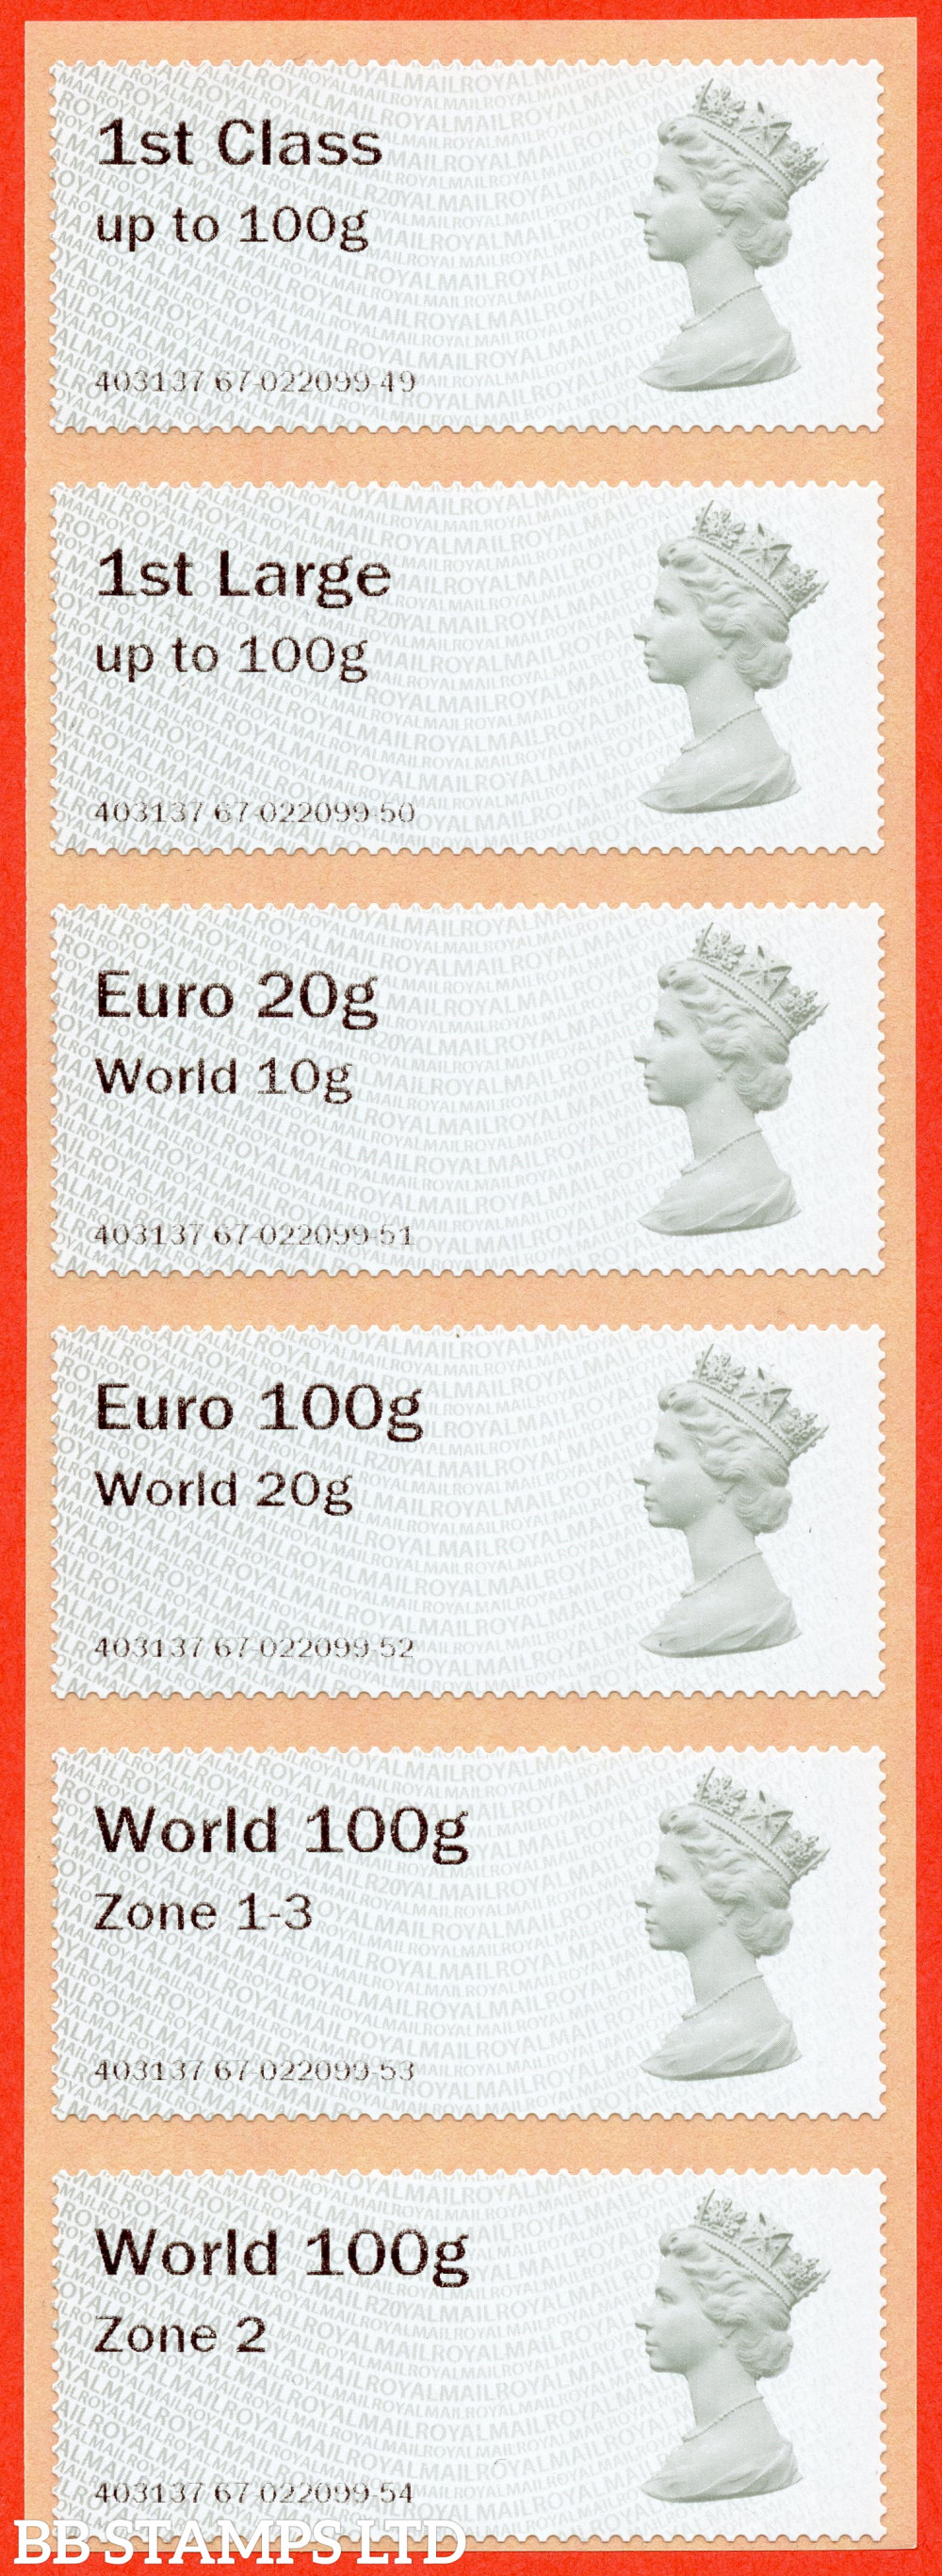 Machin (TIIA), set of 6 with 01/09/20 new overseas stamps: 1st/1stL/Euro 20g World 10g, and 3 new values: Euro 100g World 20g, World 100g Zone 1-3 and World Zone 2: with R20Y year code (BK31 P2)